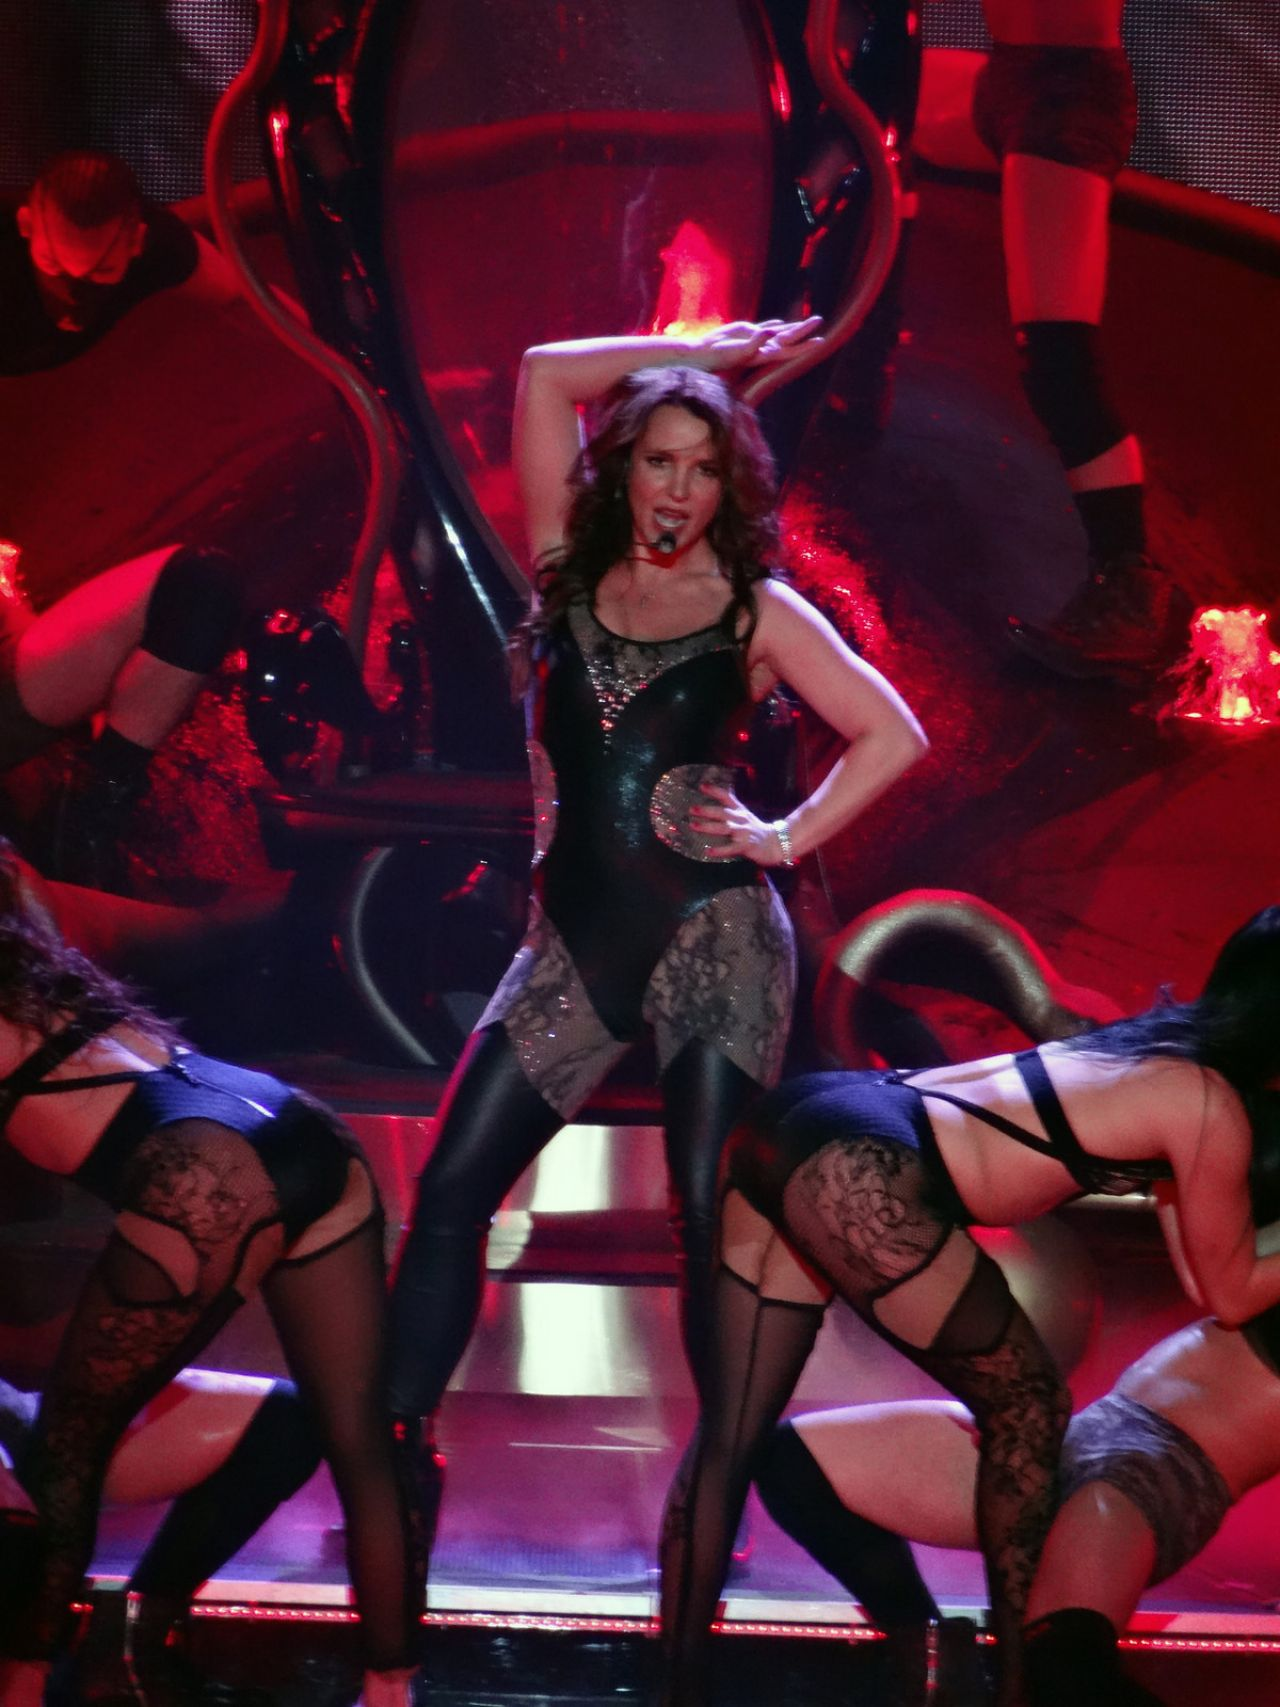 britney-spears-performing-at-planet-holl